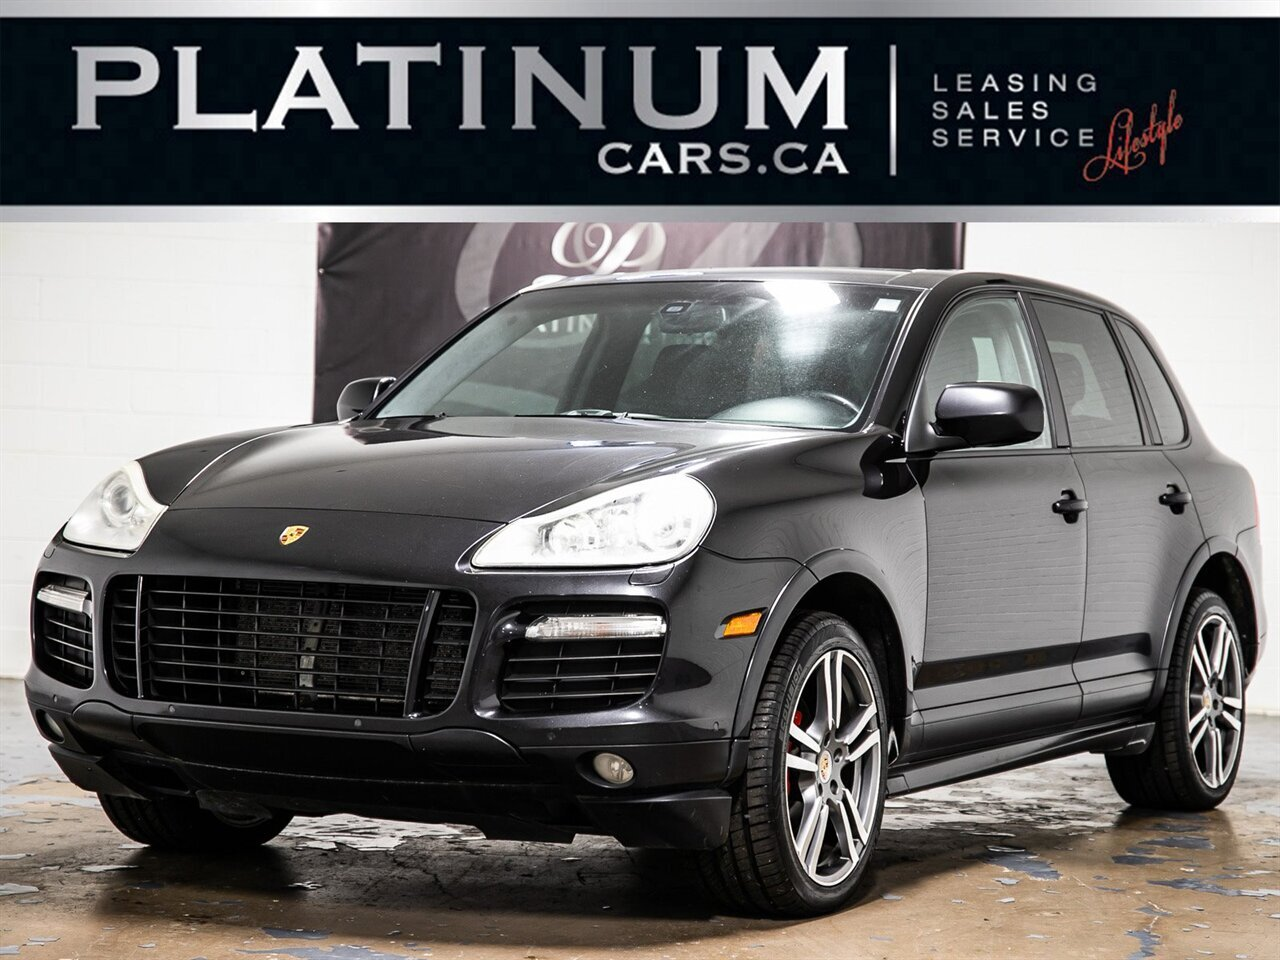 2008 Porsche Cayenne For Sale, GTS, V8, SUNROOF, ALCANTARA